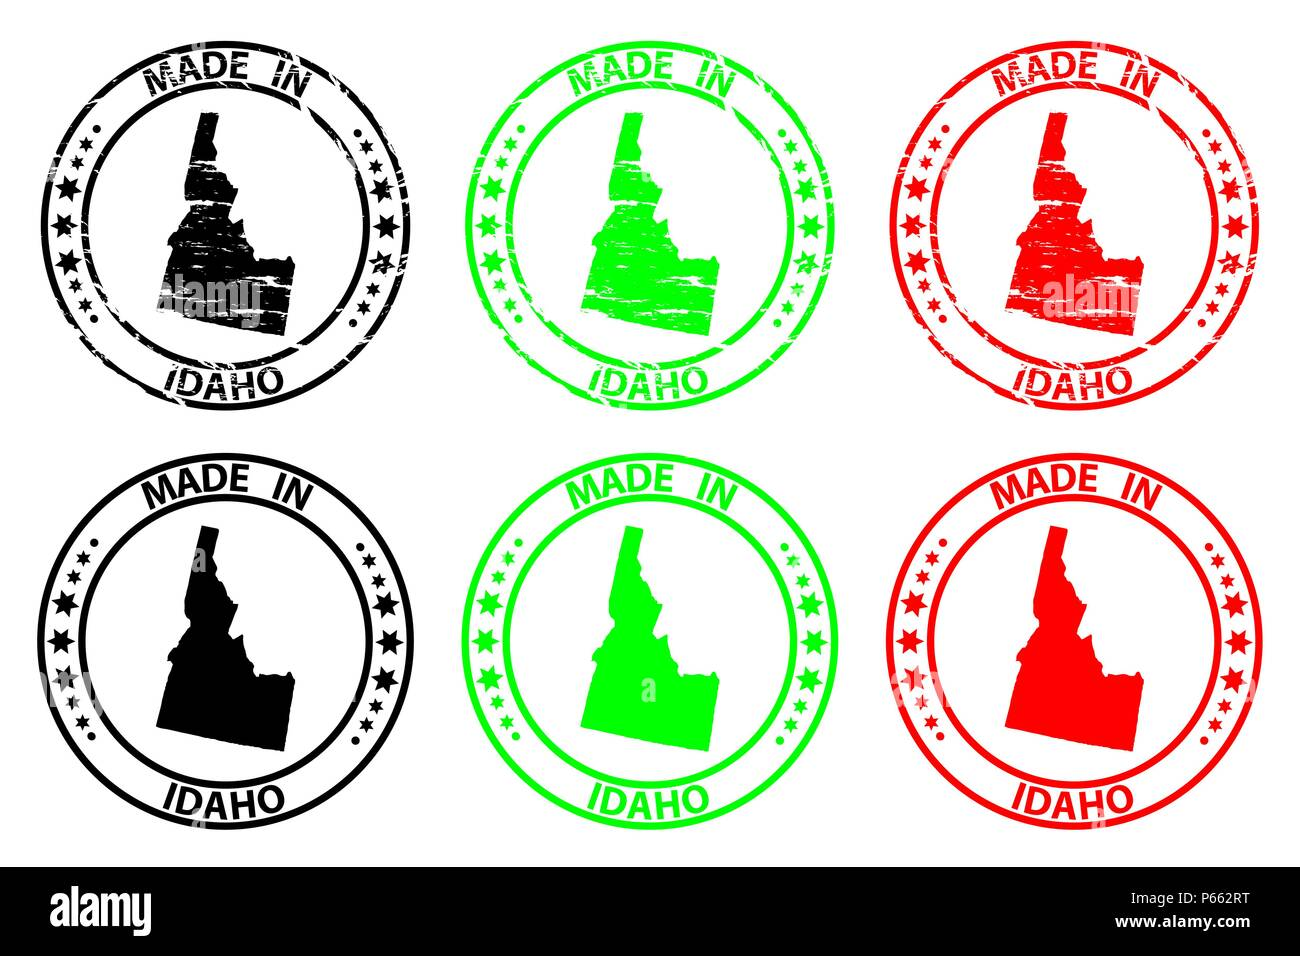 Made in Idaho - rubber stamp - vector, Idaho (United States of America) map pattern - black, green  and red - Stock Vector